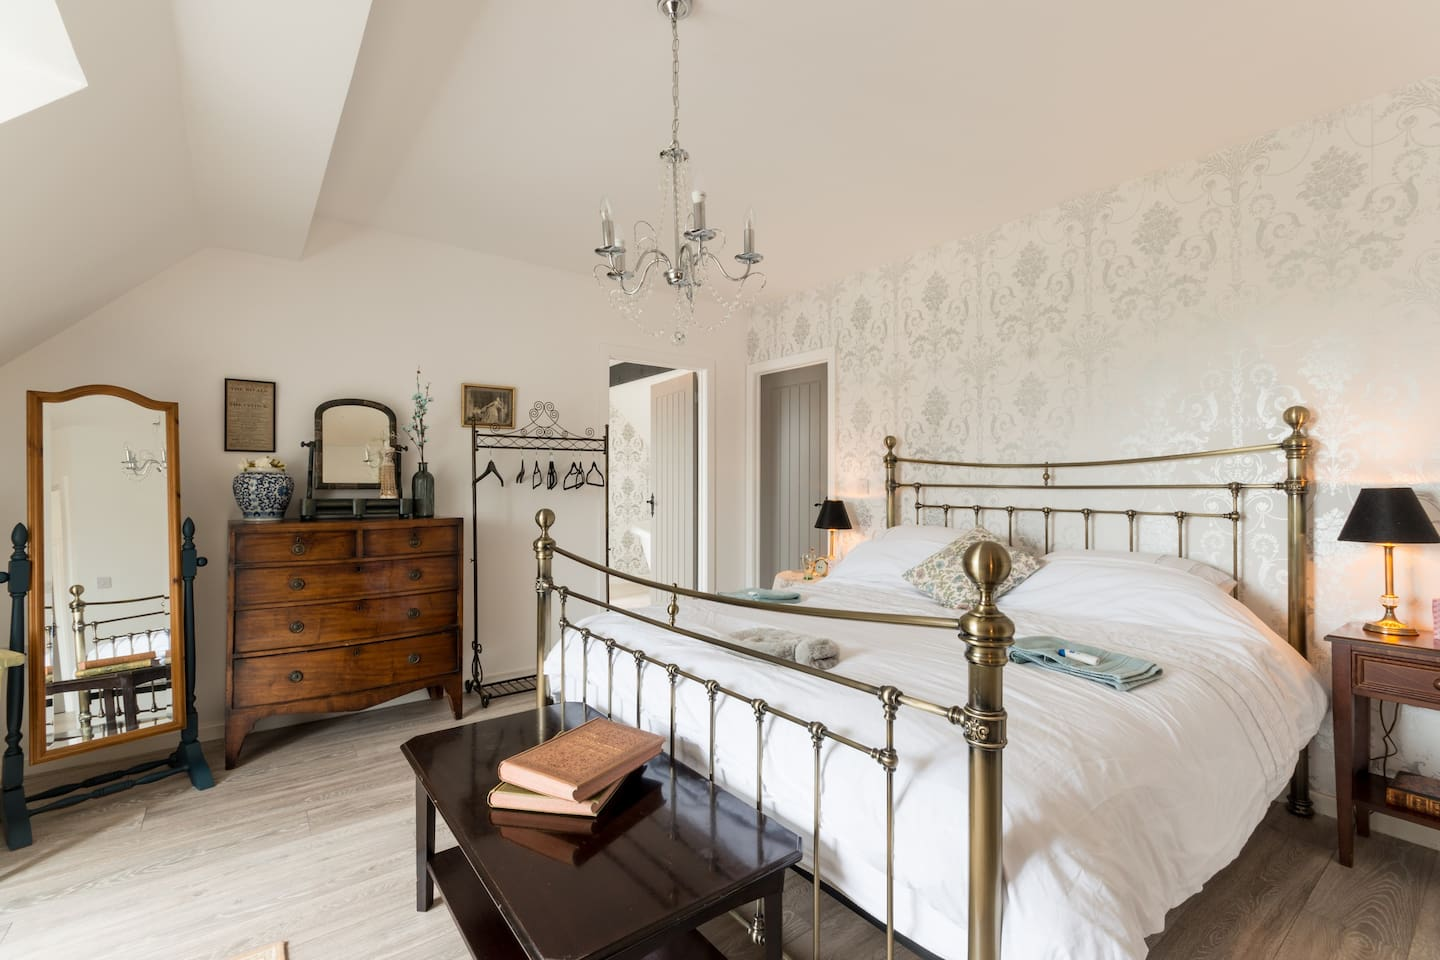 Another view of the Elegant Master Bedroom showing the doorway into the adjoining luxury Ensuite Bathroom (lots of privacy!). Plenty of clothes storage and space for laying out luggage